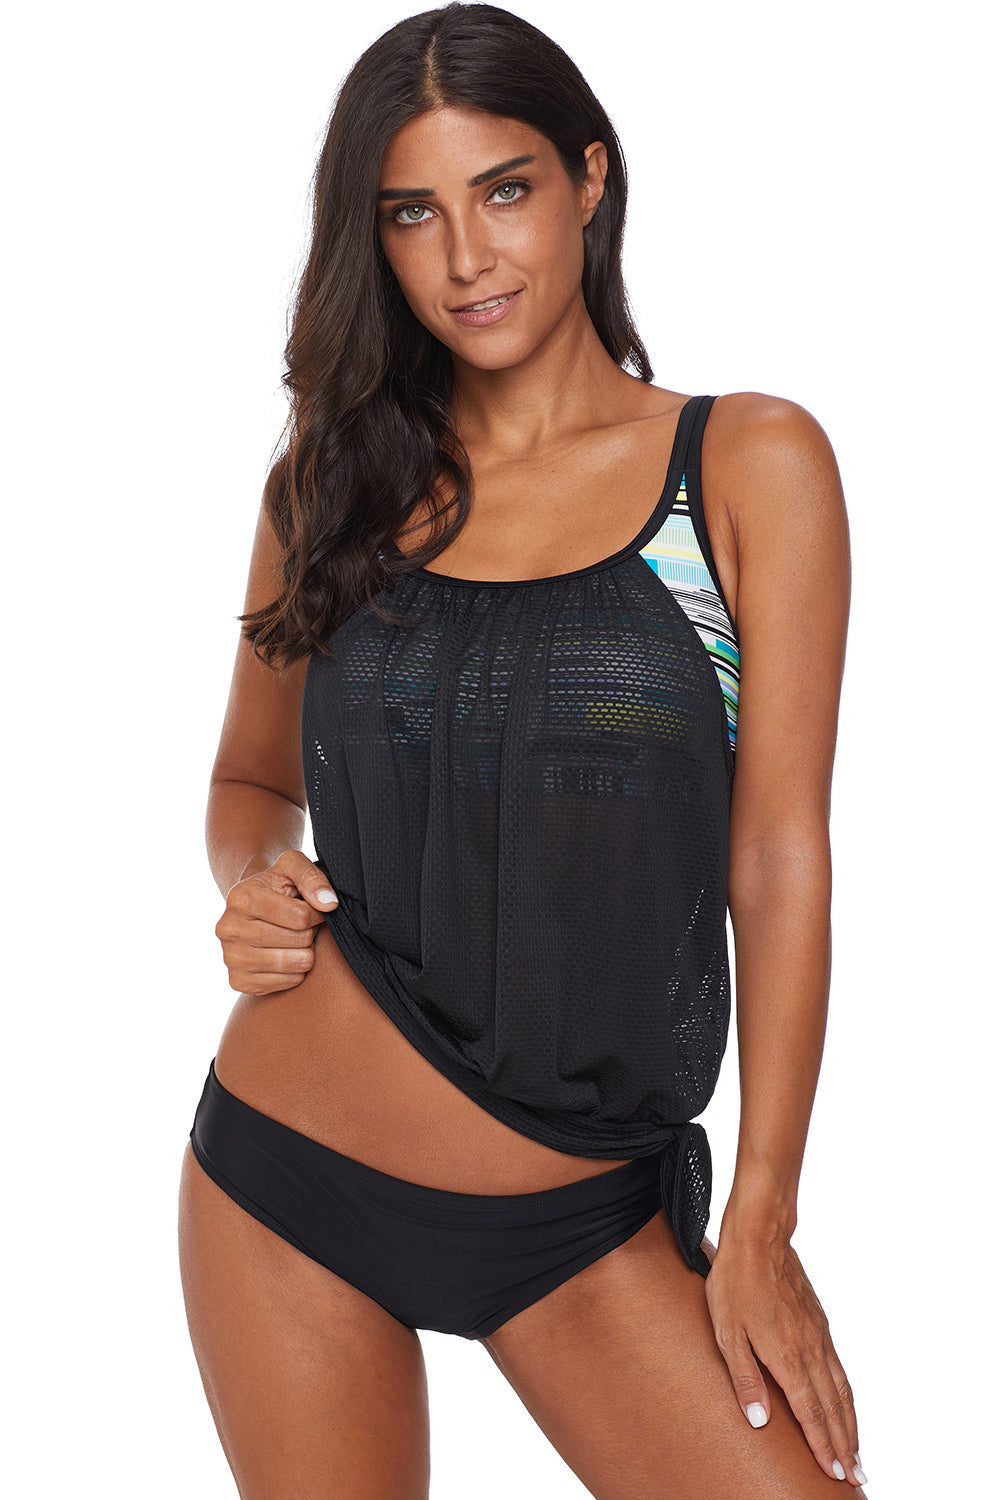 Multicolor Layered Tankini Top with Brief Swimsuit